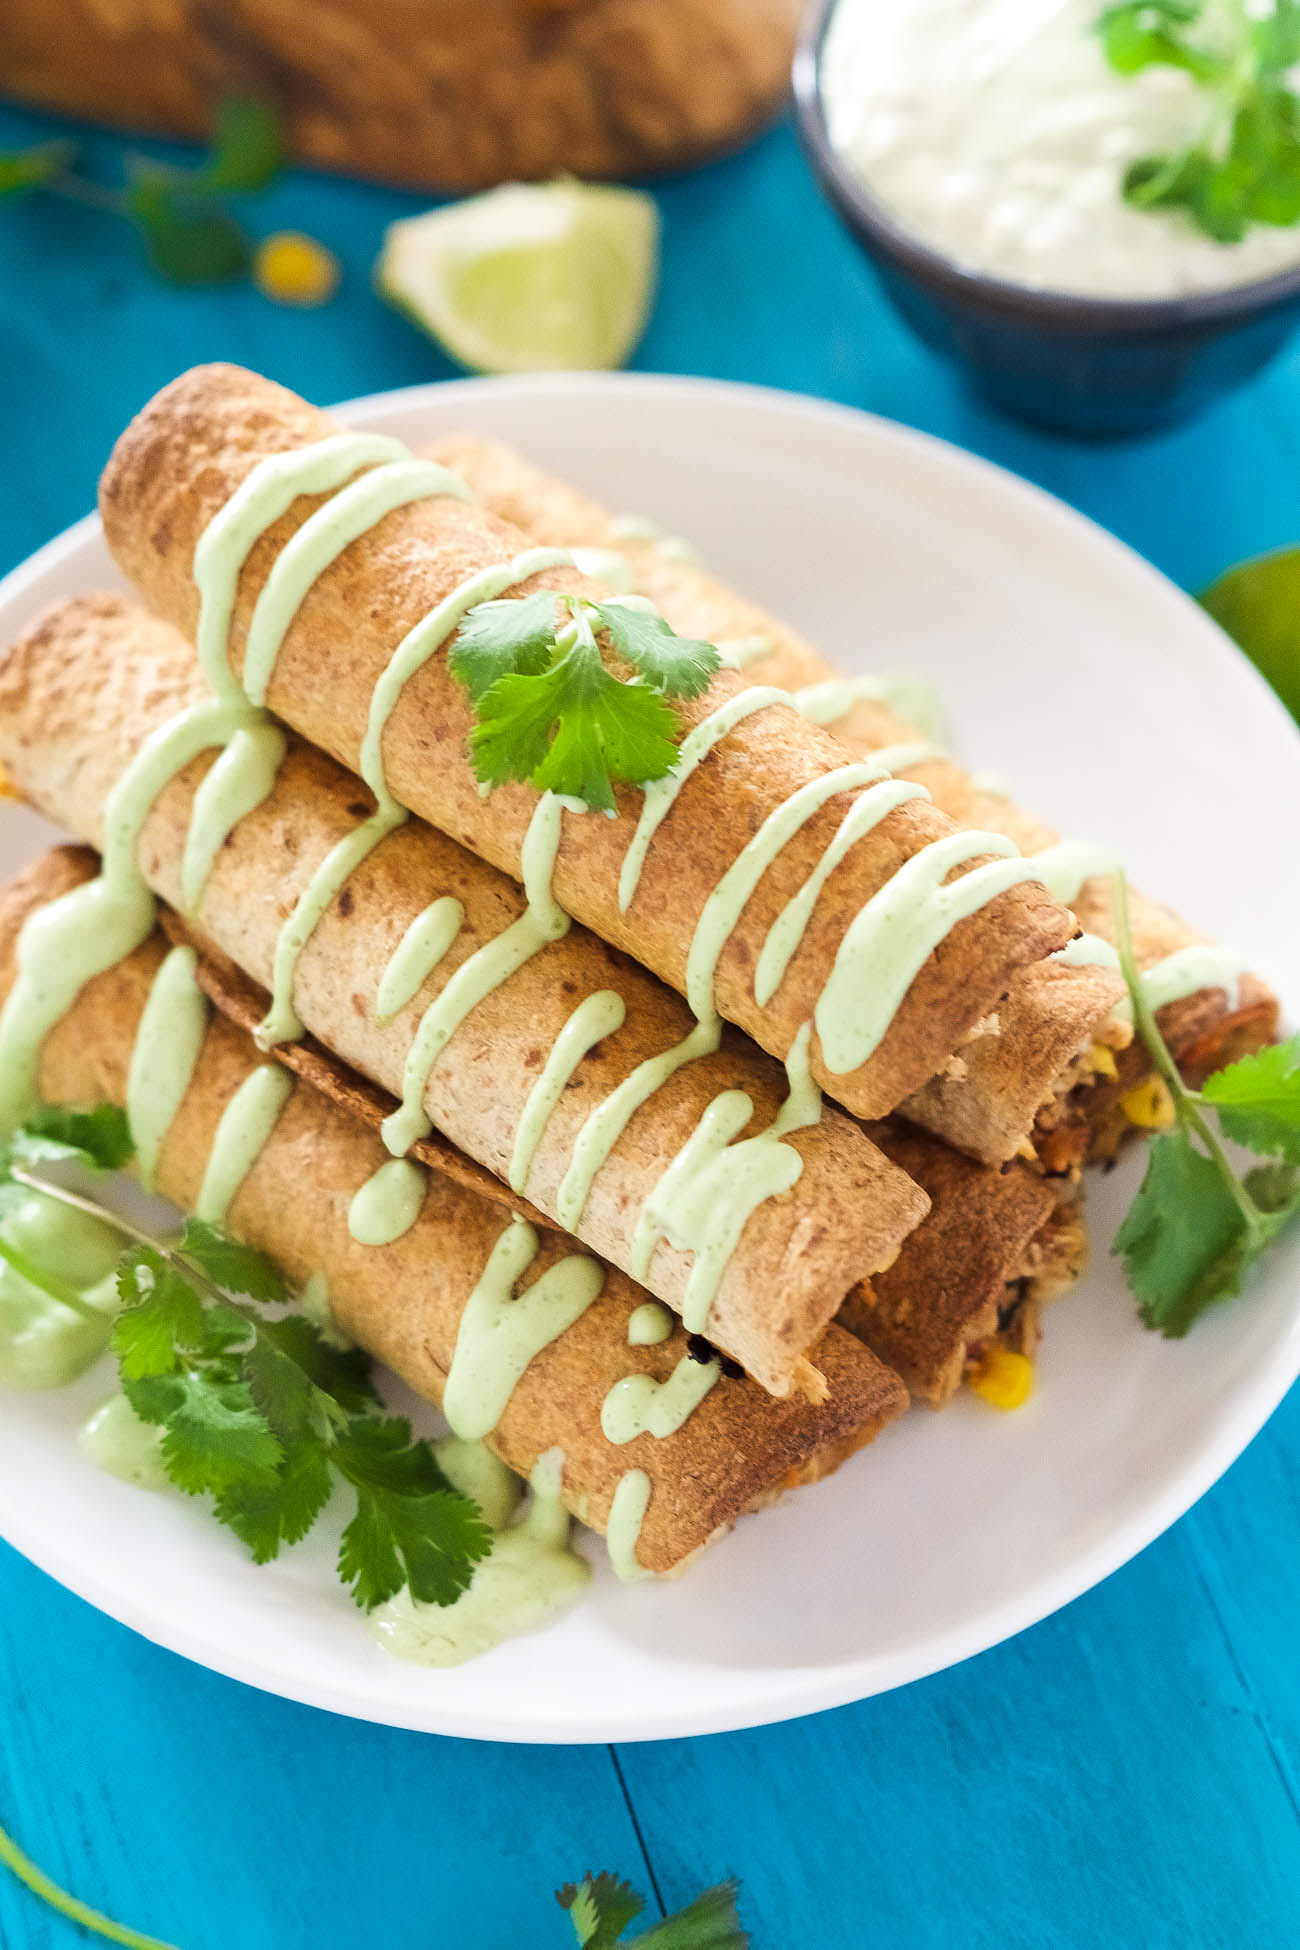 Cheesy Firecracker Baked Chicken Taquitos are a healthier alternative to their store bought sidekicks! Filled with gooey, spicy cheese, corn, chicken and peppers, they are super crispy thanks to a quick bake in the oven!